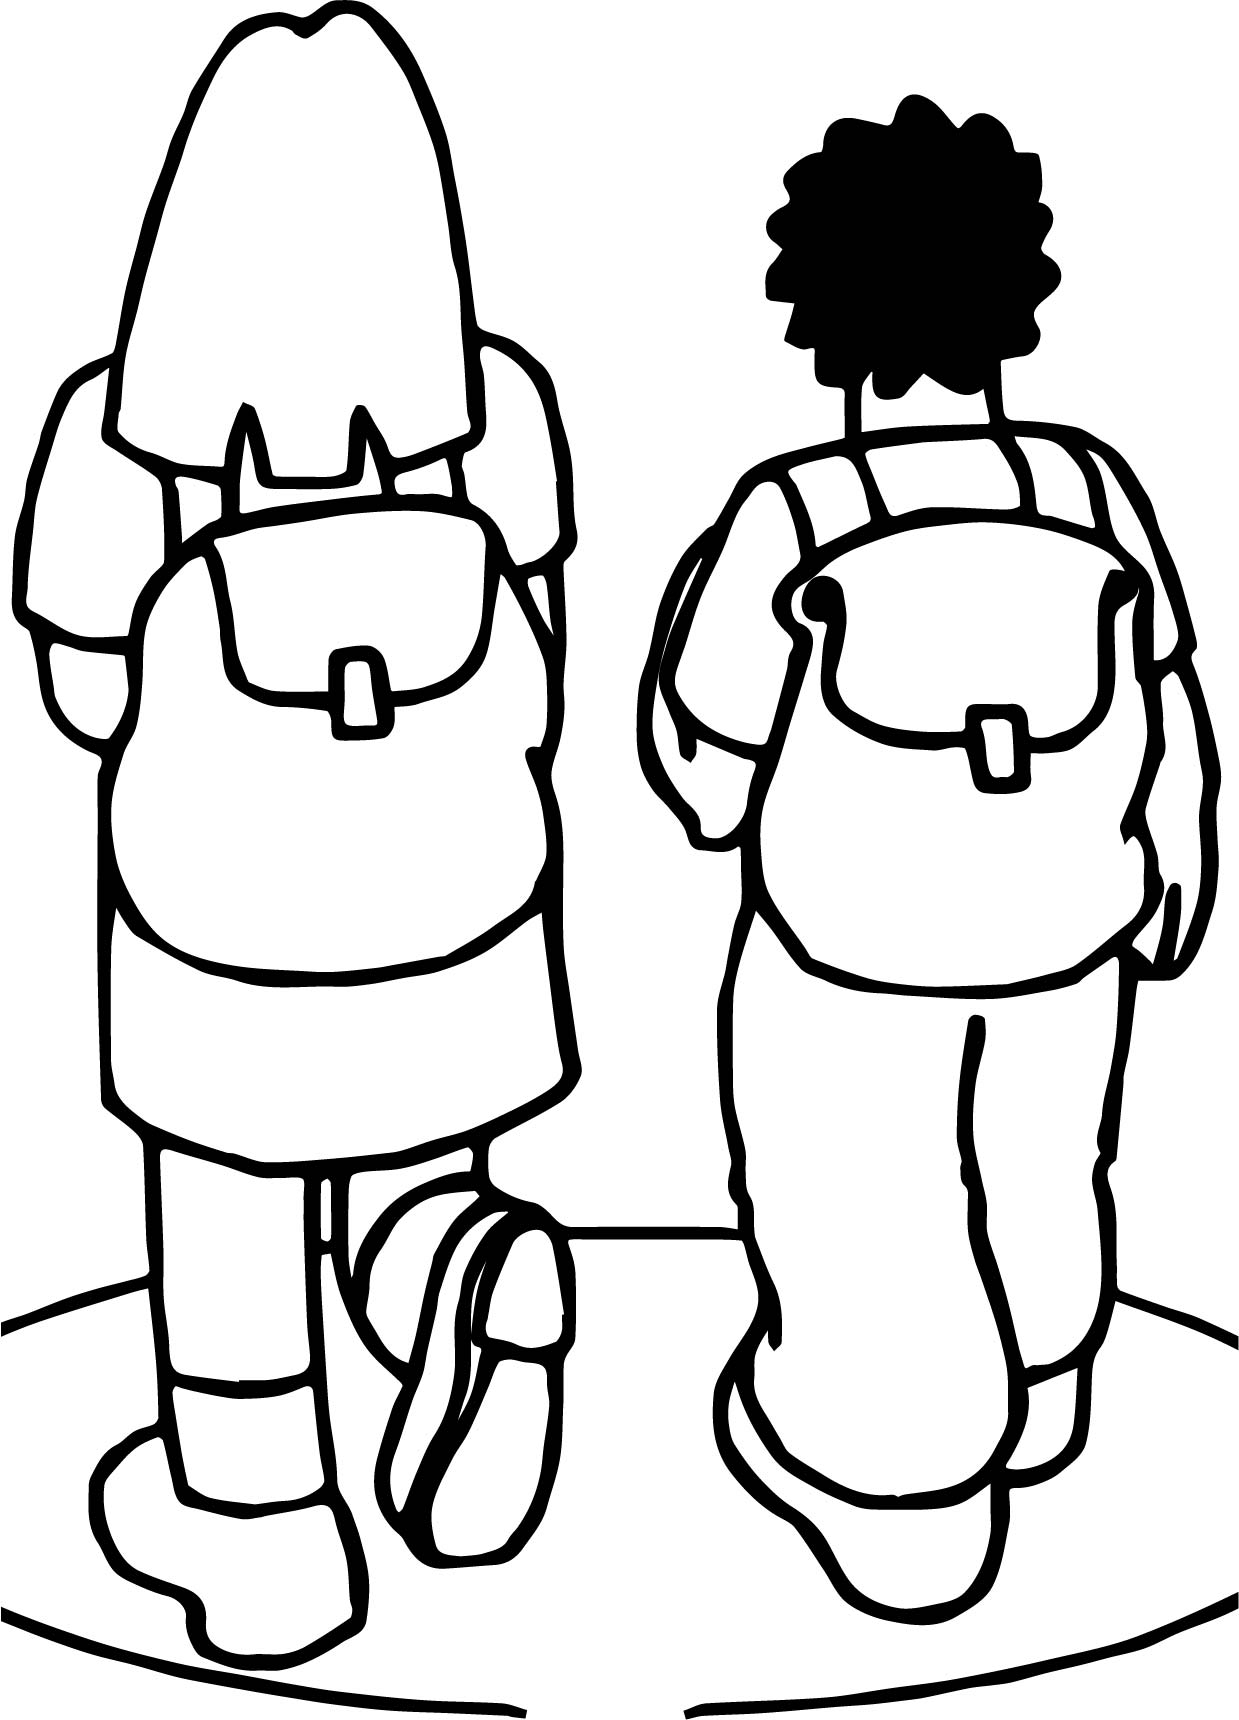 Going To School With School Bag Coloring Page